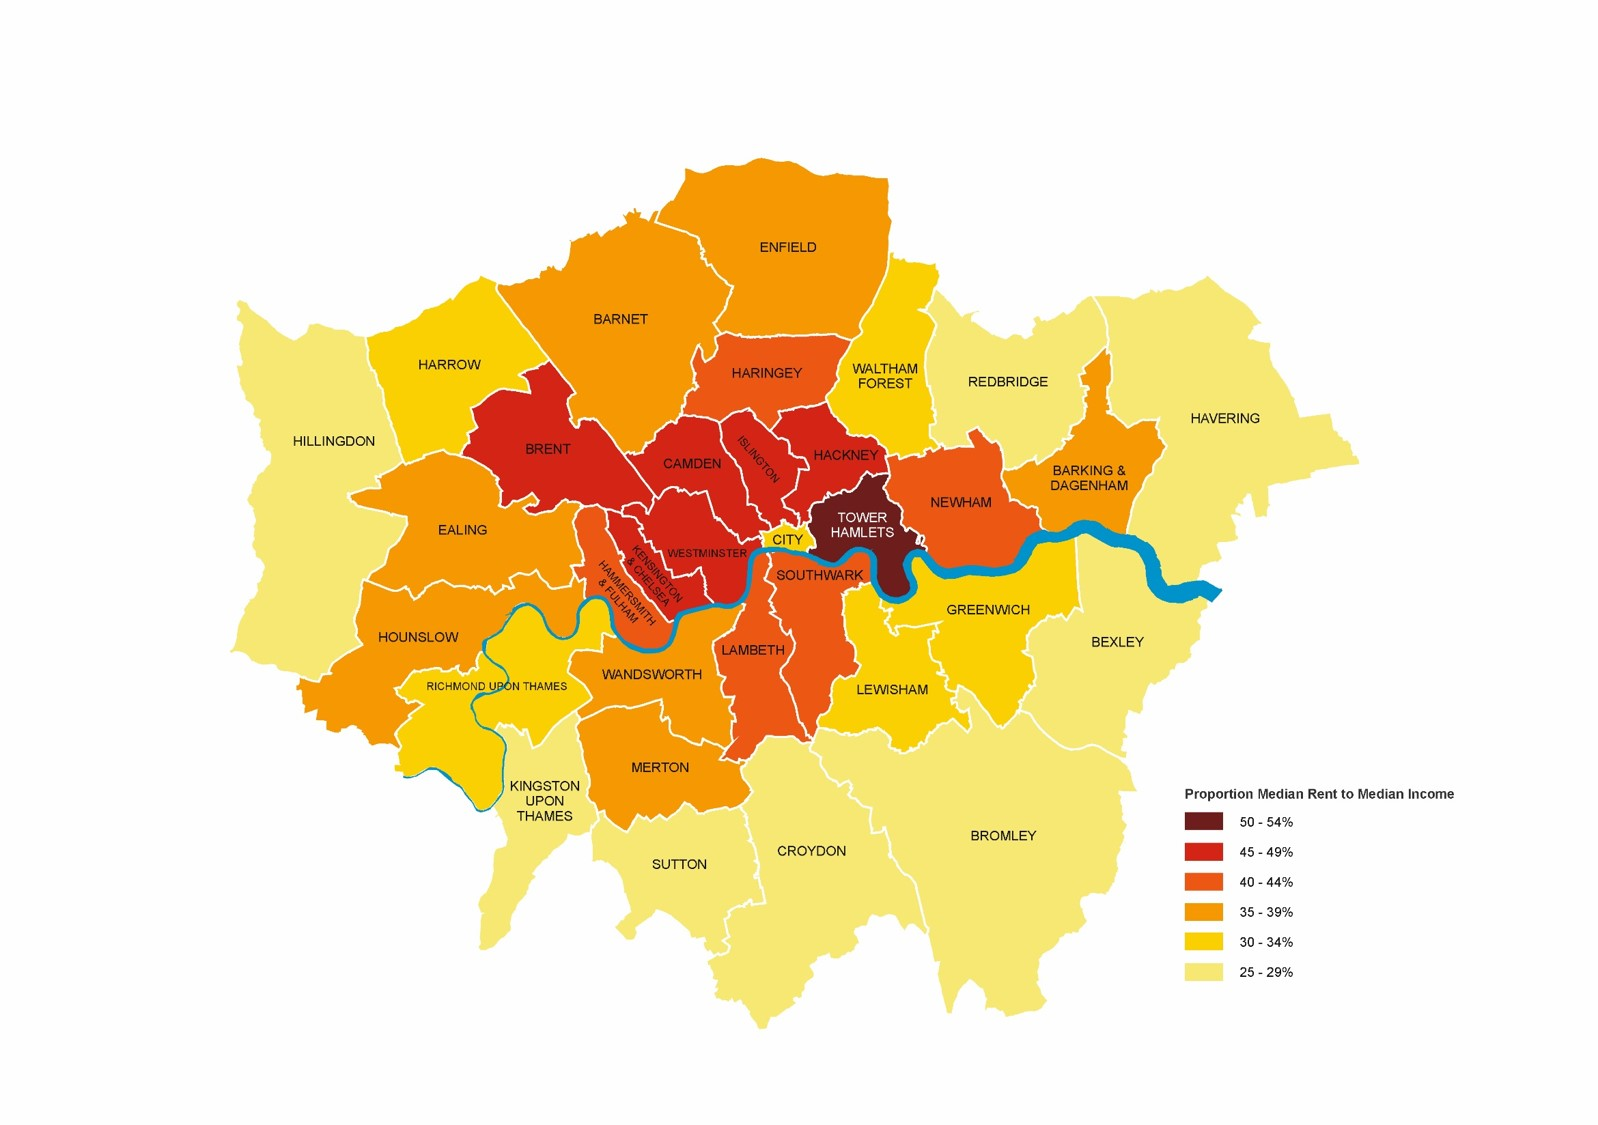 London 39 S Prs The Affordability Issue Future Of London